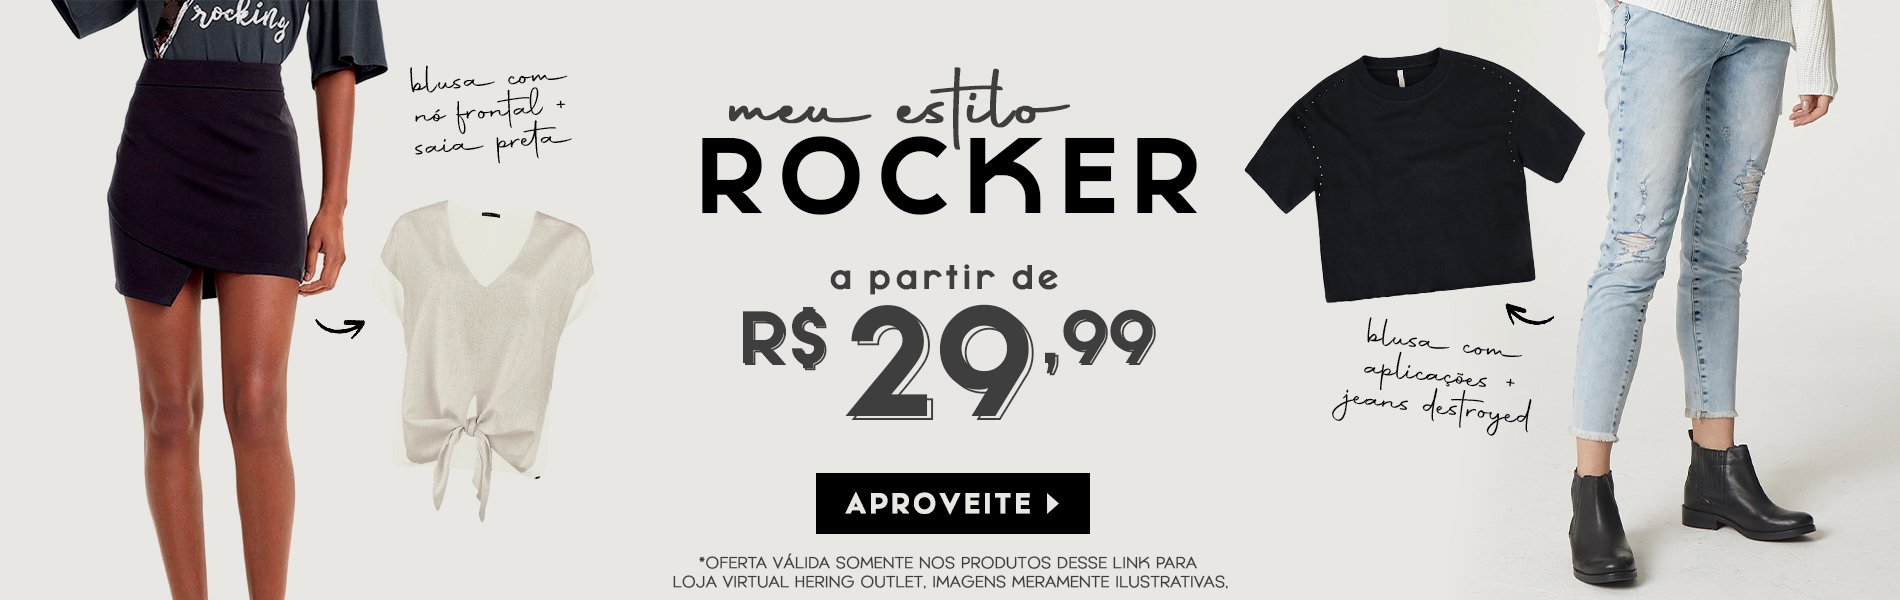 Outlet-Estilo-rocker.jpg